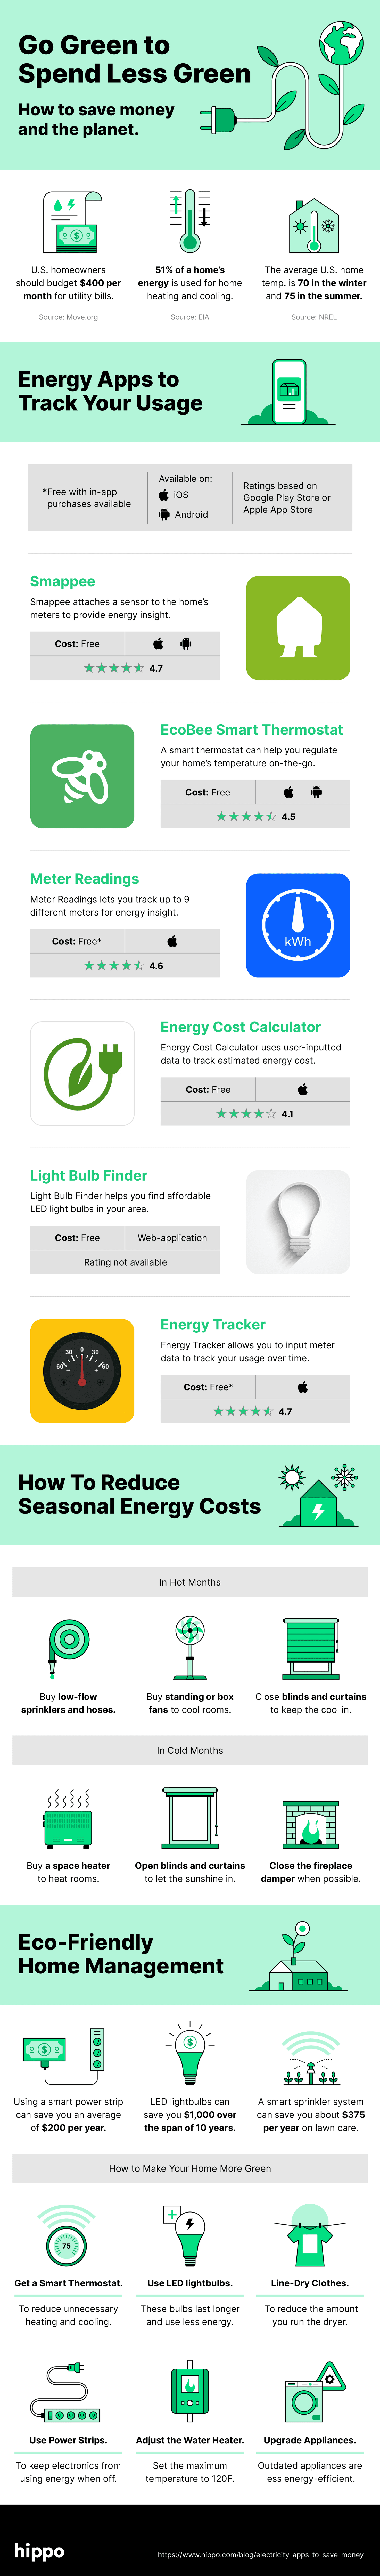 Going Green Infographic